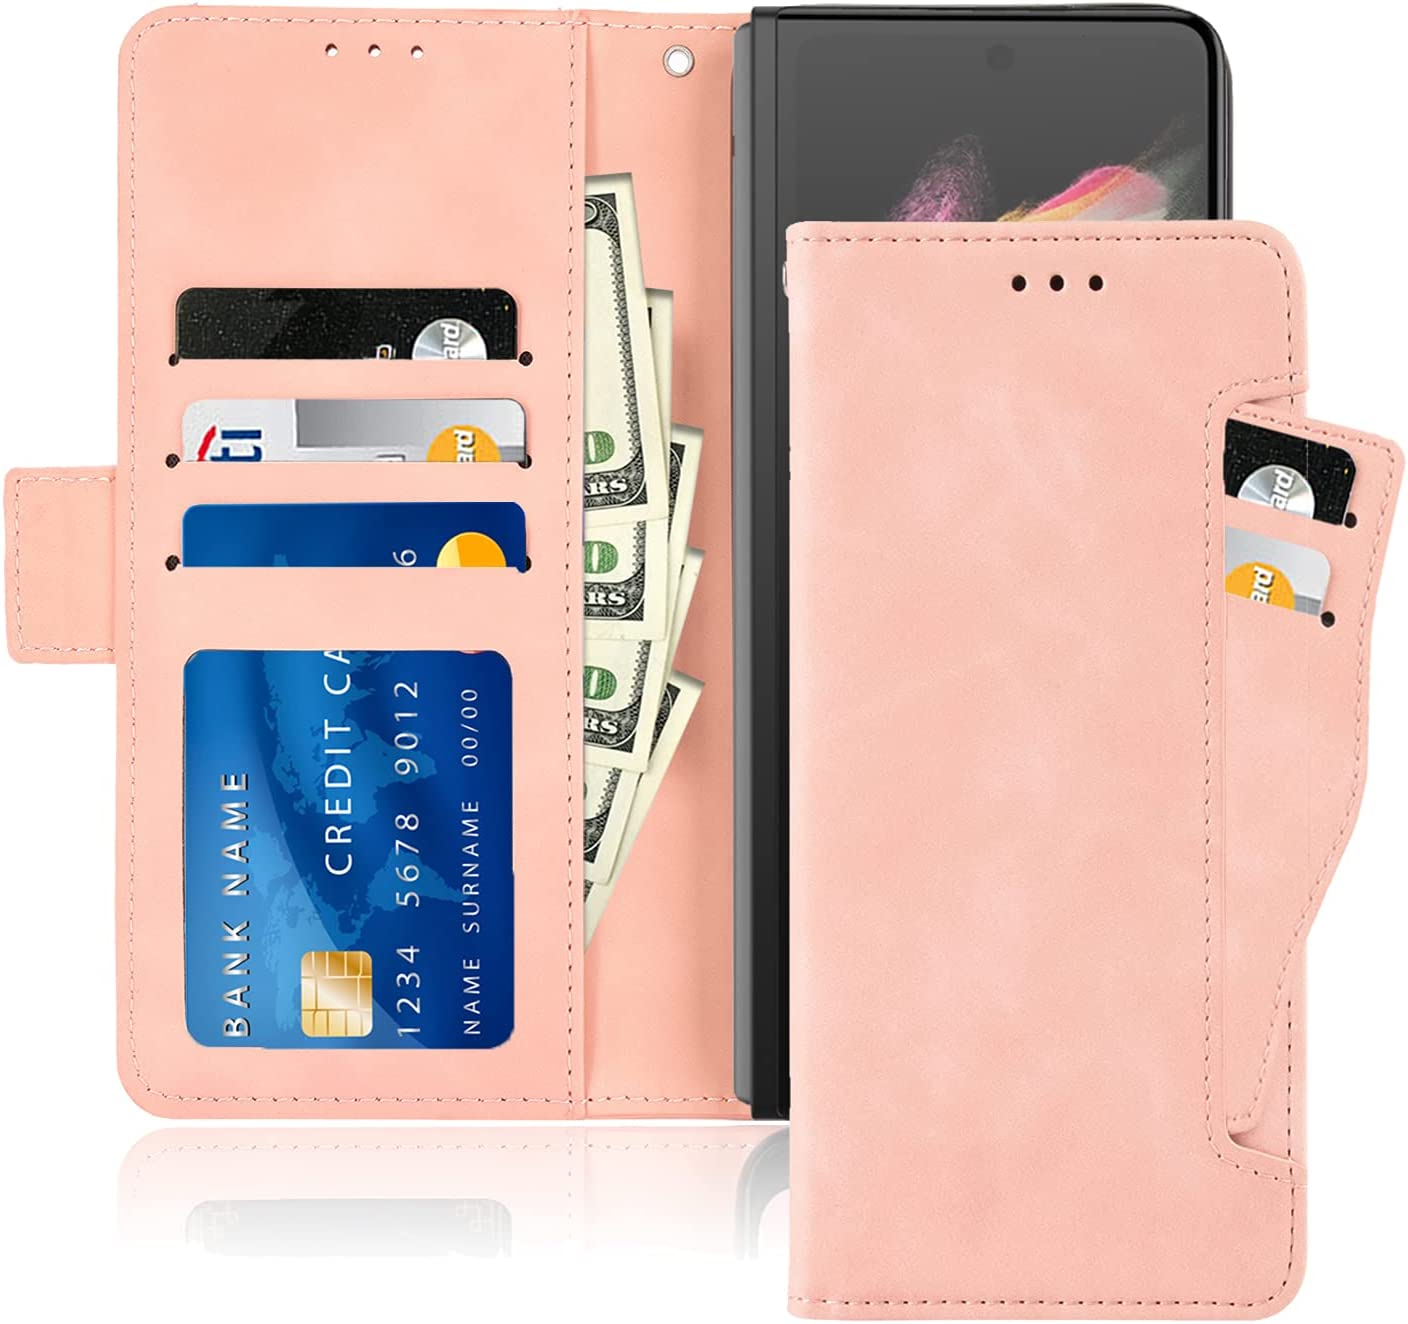 10 Cent Galaxy Z Fold 3 5G Case, Galaxy Z Fold 3 Wallet case, Classic Leather Wallet Foldable Case with Credit Card Holder Slots Flip Wallet Case for Samsung Galaxy ZFold3 5G(Pink)